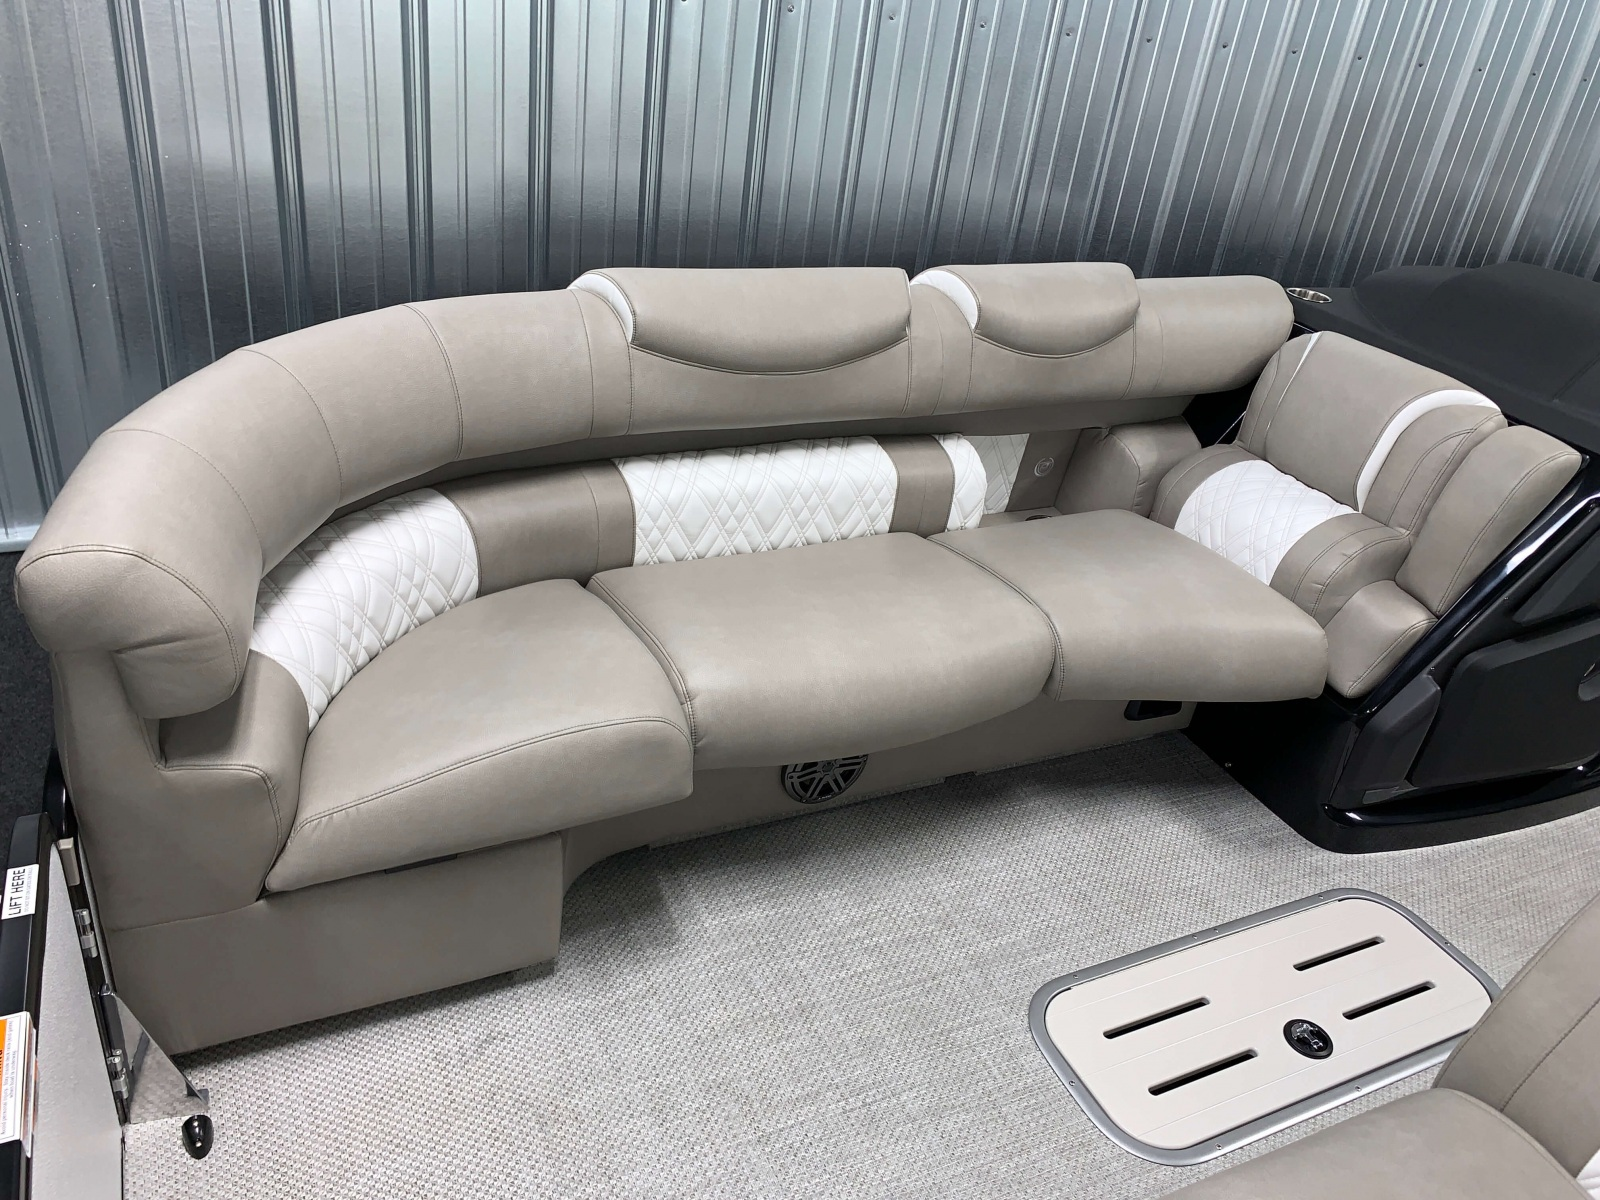 Interior Seating of the 2021 Premier 250 Grand Majestic Tritoon Boat